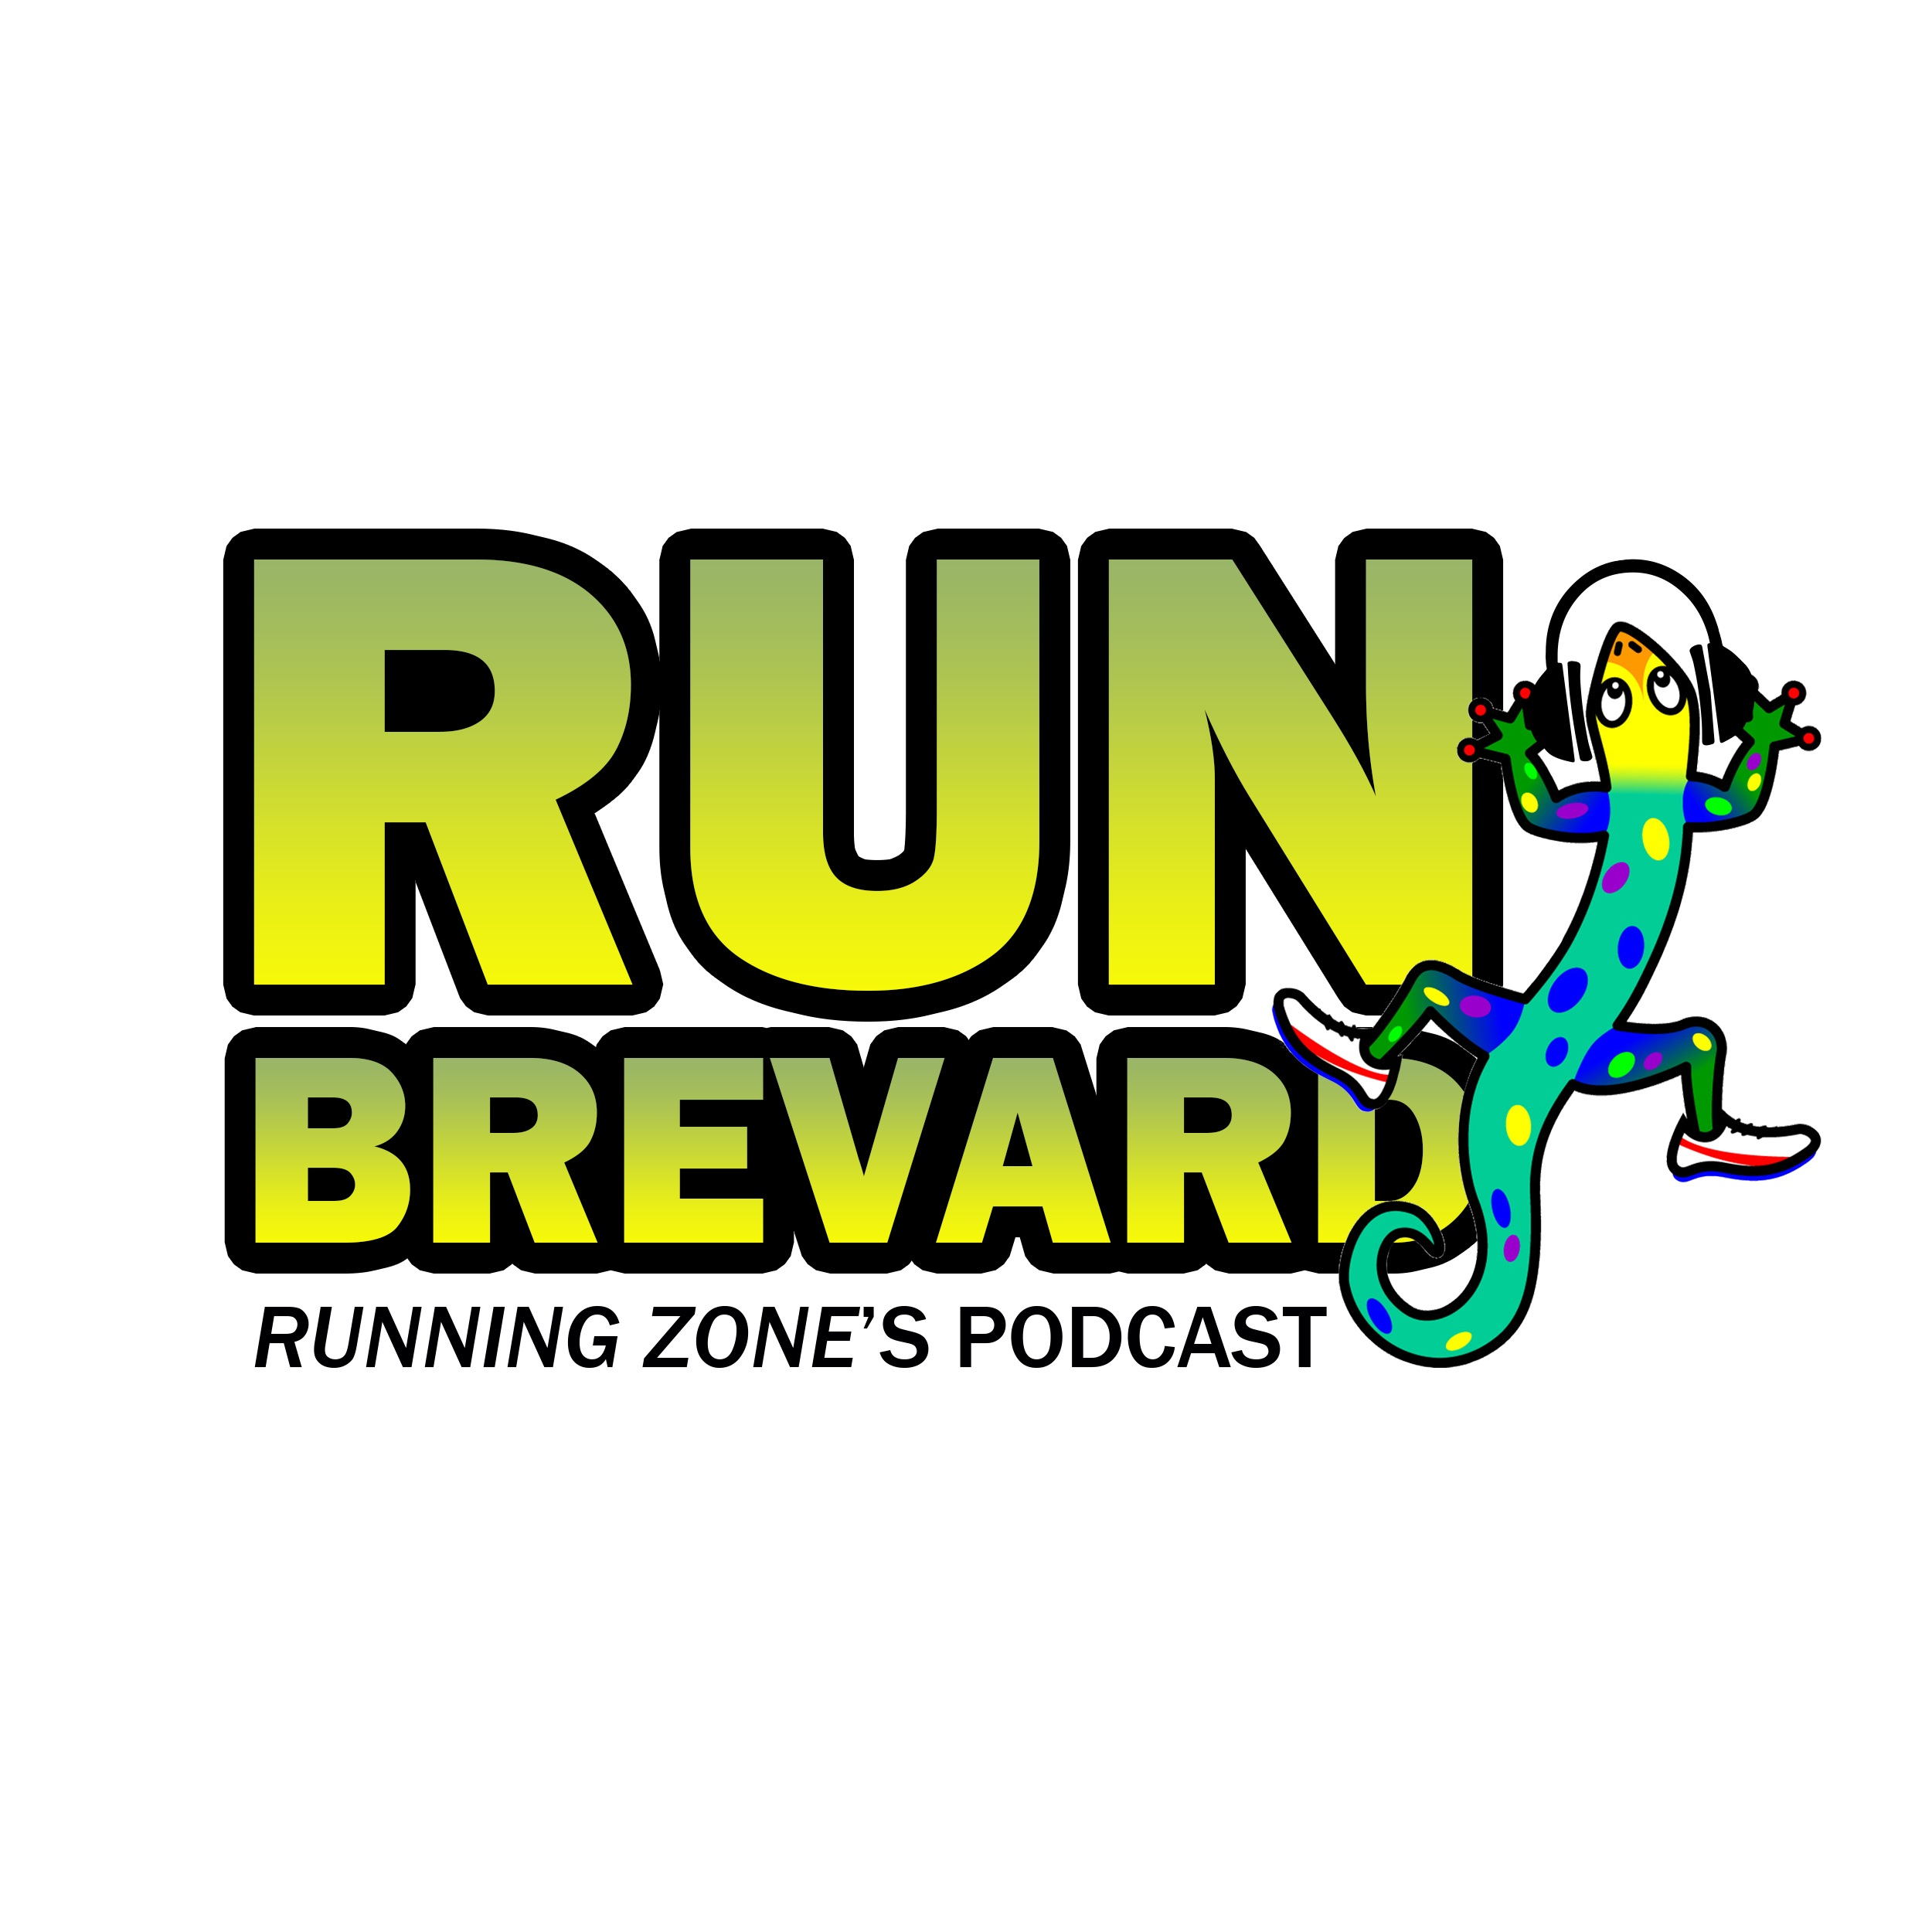 Run Brevard - Running Zone's podcast show art